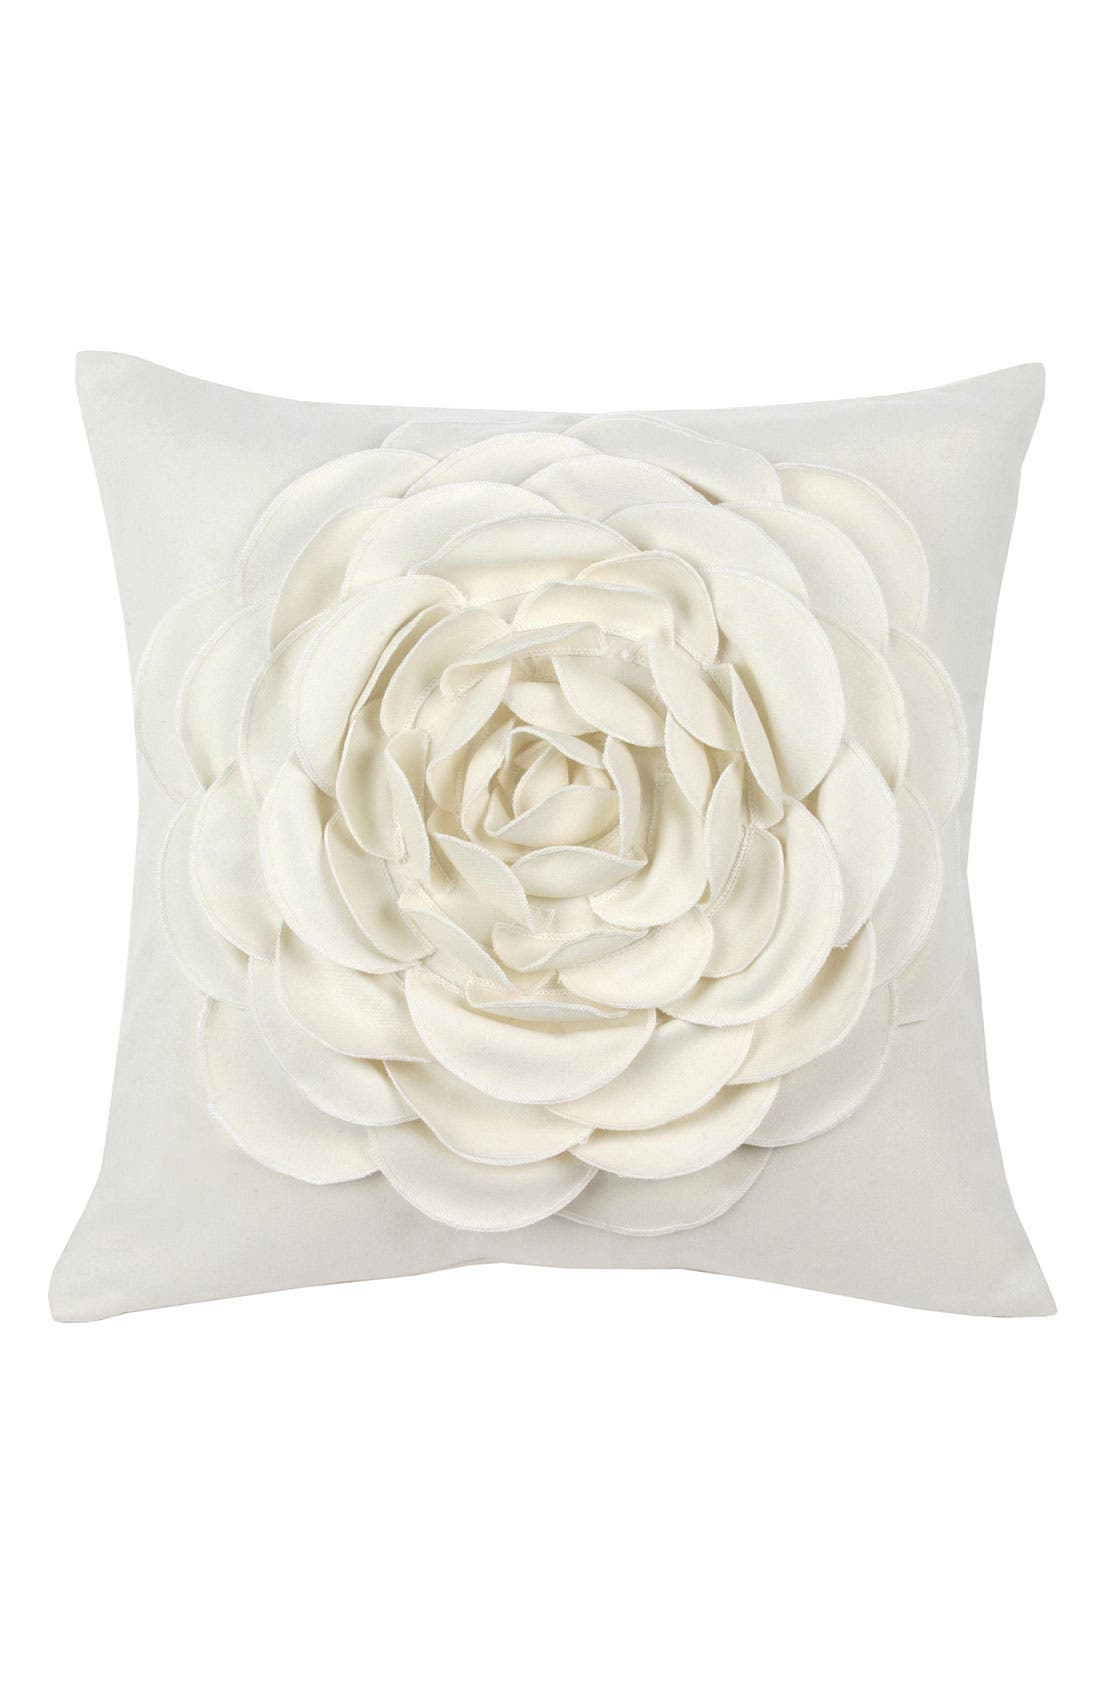 Alternate Image 1 Selected - Blissliving Home 'Jenna' Pillow (Online Only)